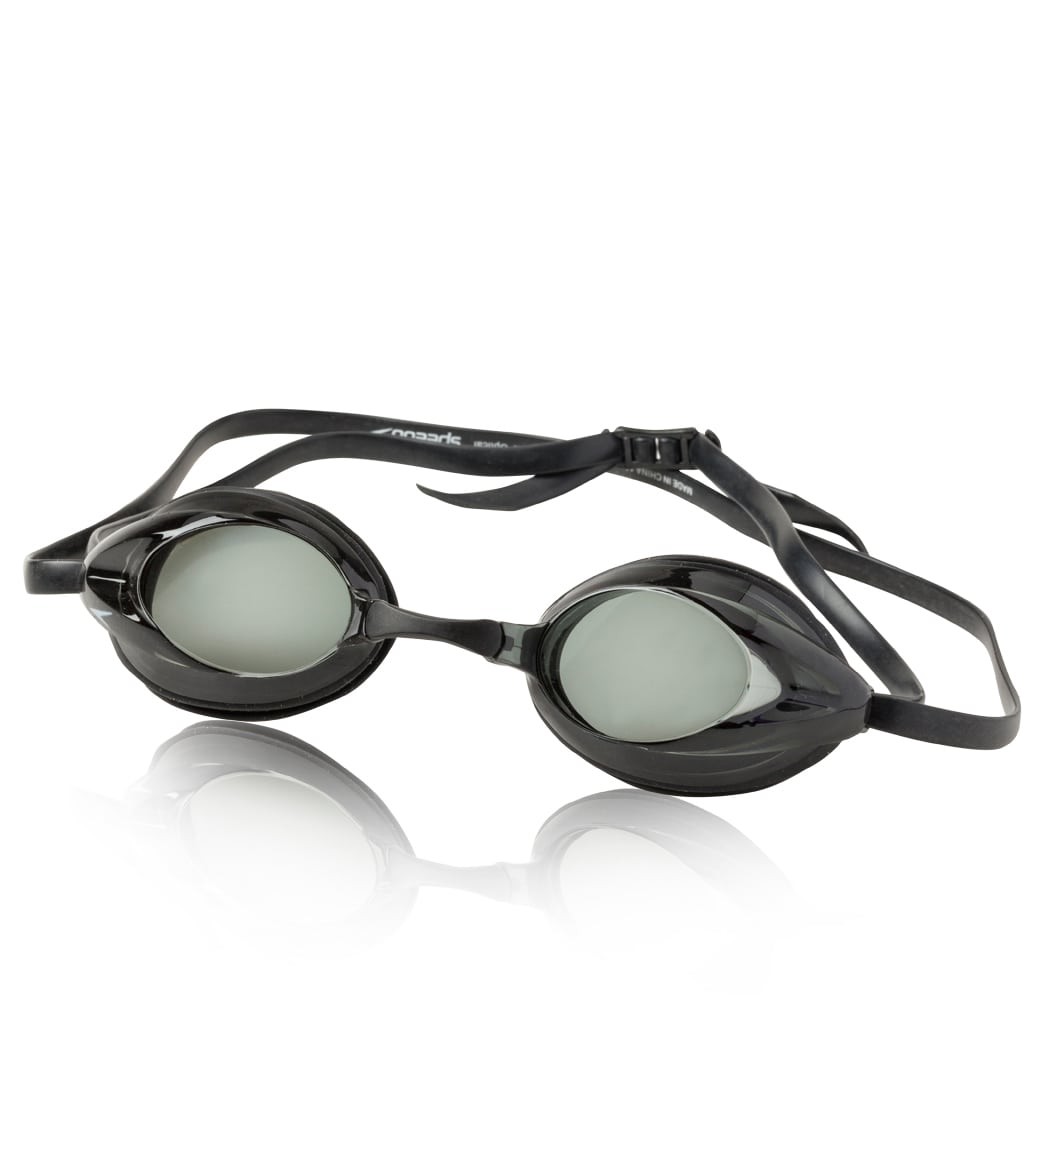 d07db8f7cb4 Speedo Vanquisher Optical Goggle at SwimOutlet.com